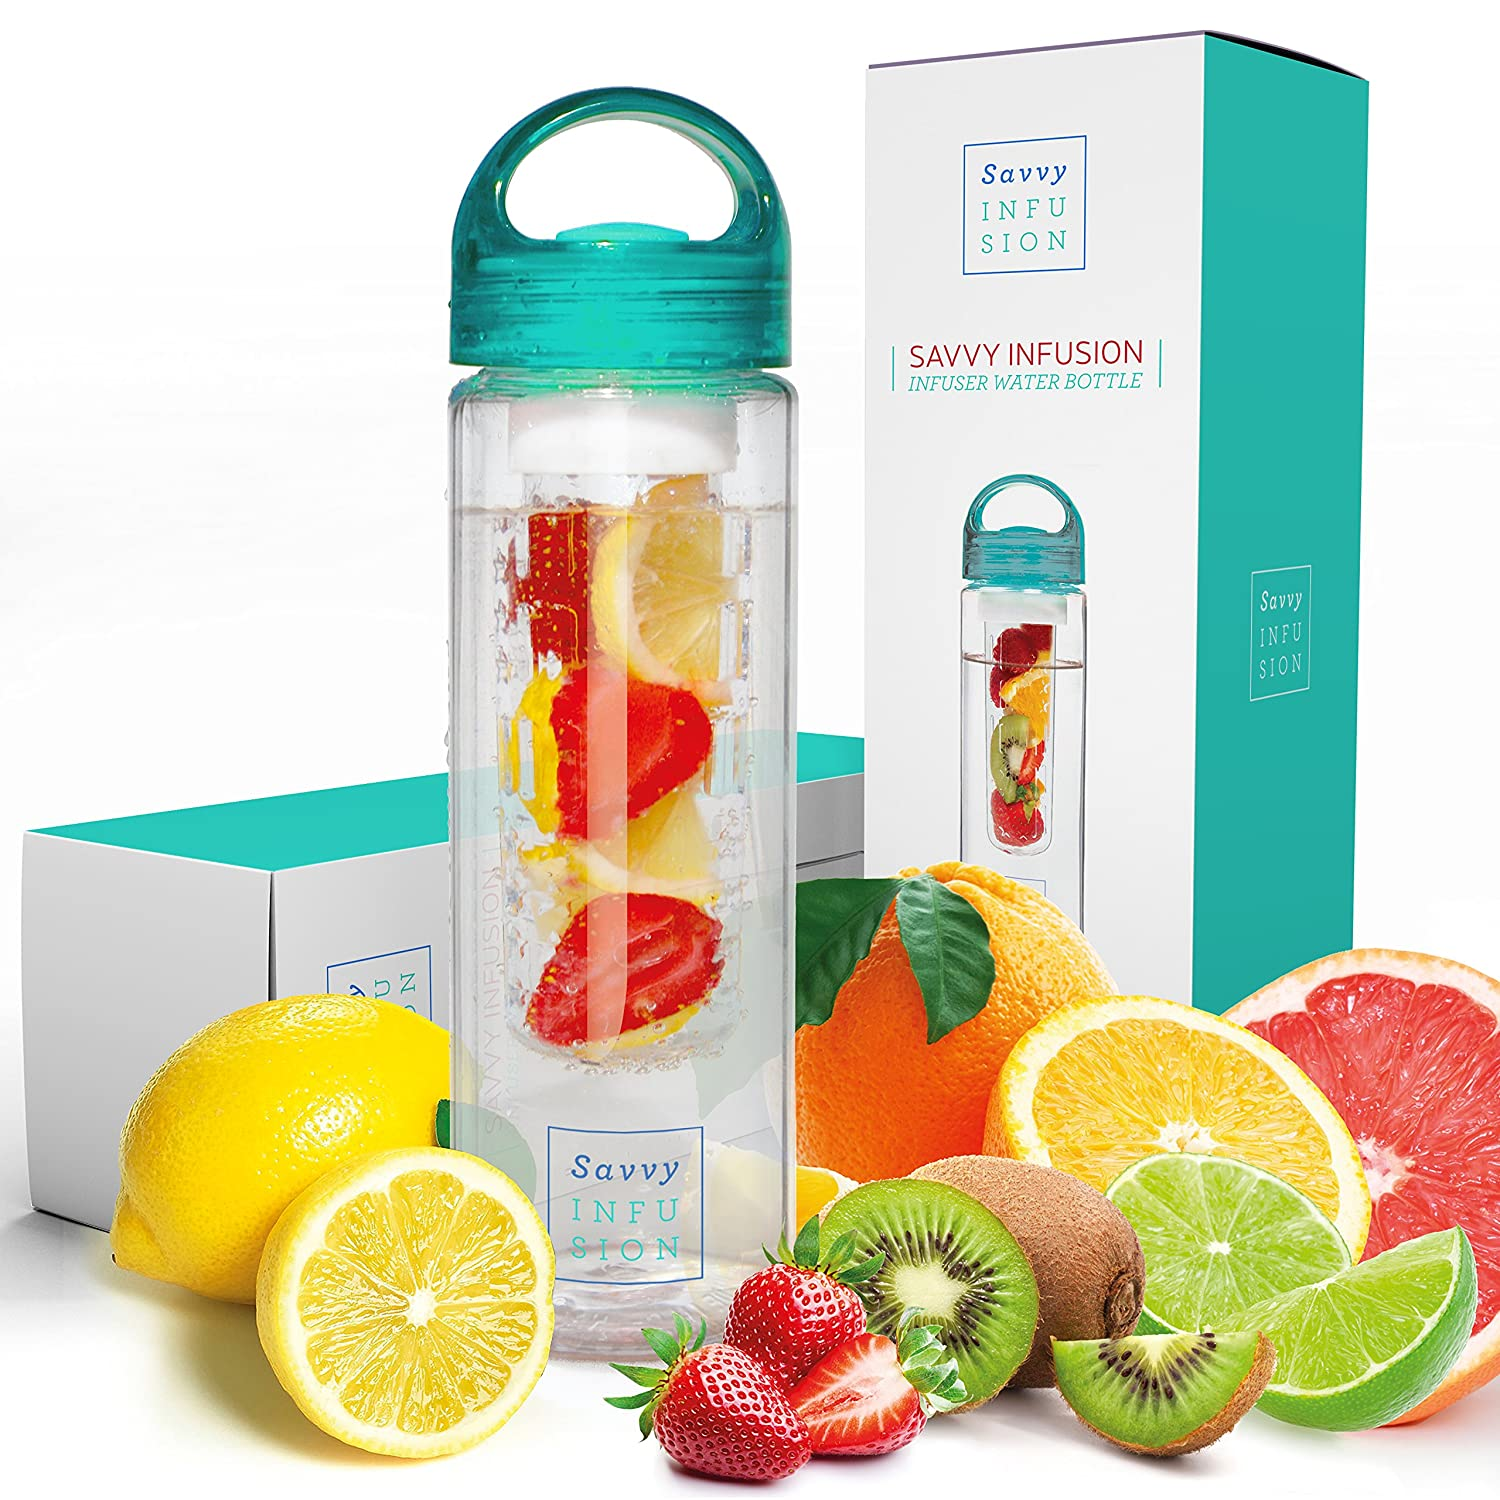 Savvy Infusion Water Bottle - 24 or 32 Ounce - Featuring Unique Leak-Proof Silicone Sealed Cap w/ Handle - Includes Bonus Recipe Ebook One Savvy Life FB-SI-BLUE-15